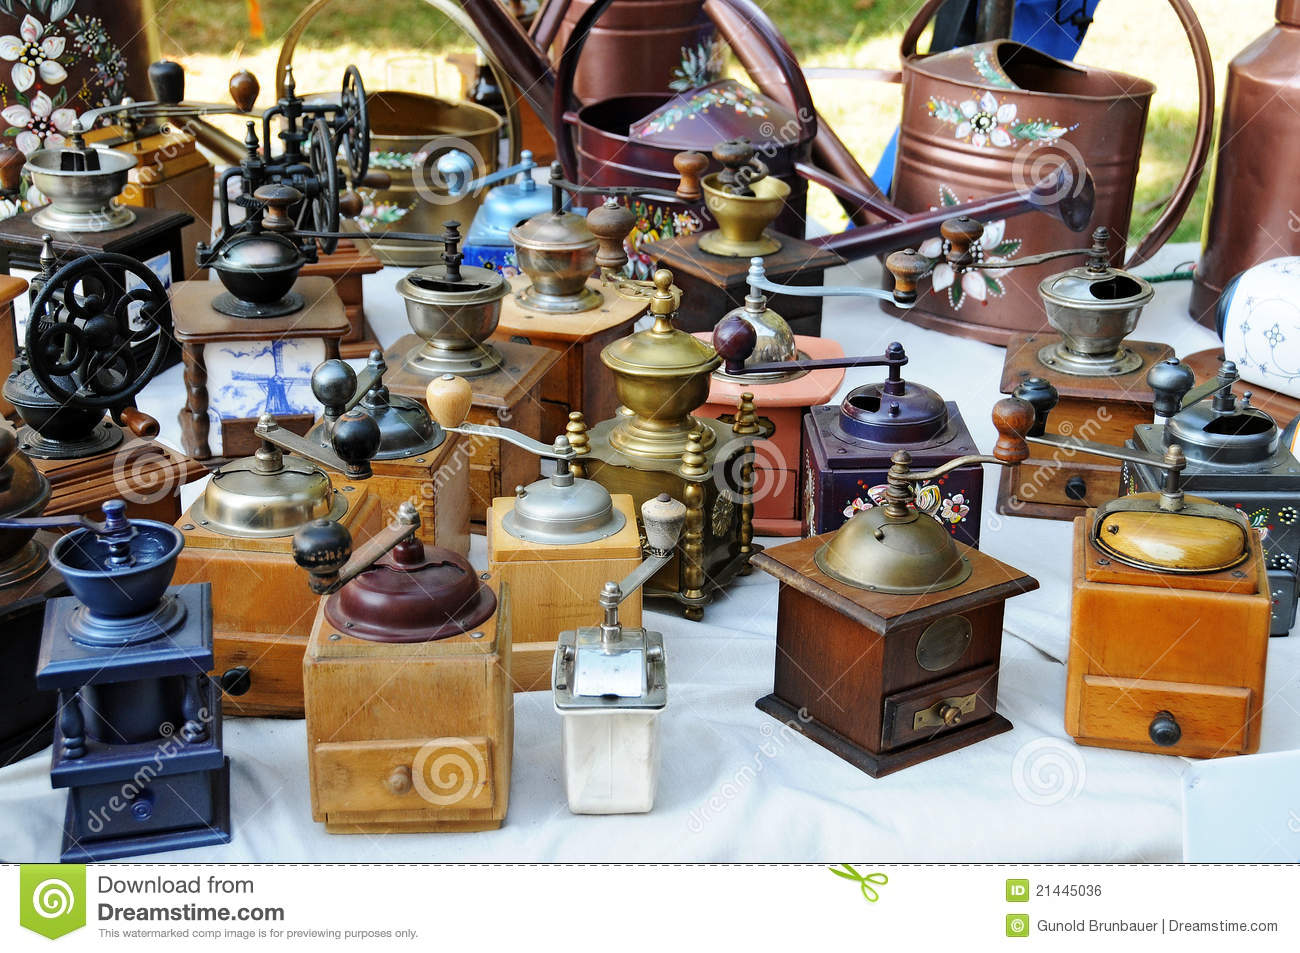 How to Start a Small Flea Market Business